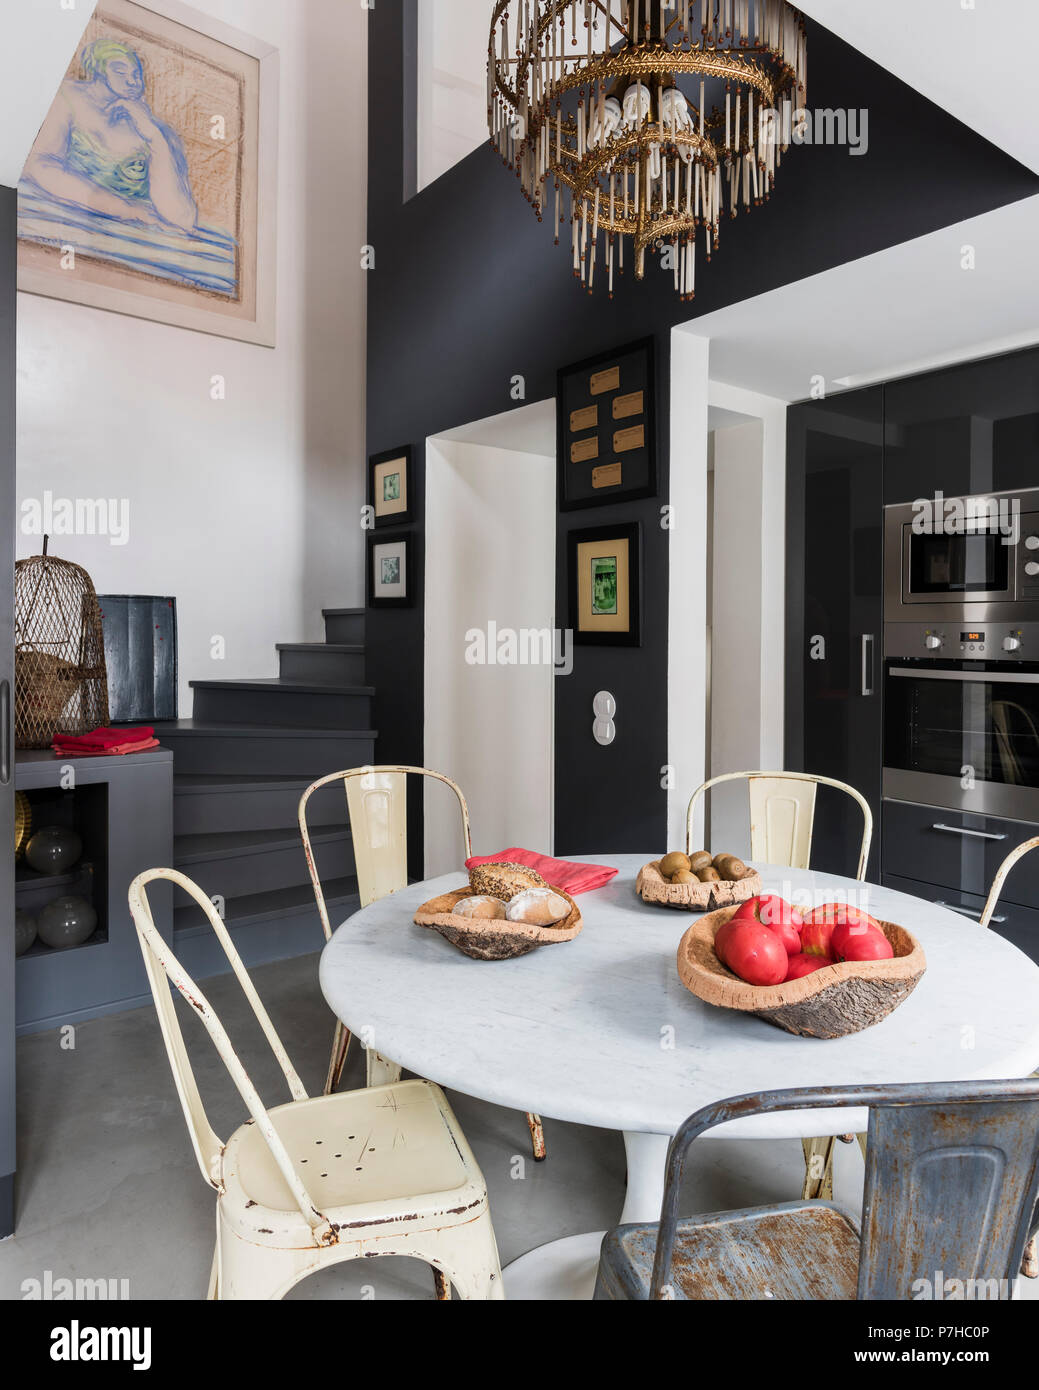 Dining area in modern open plan apartment with vintage metal ...